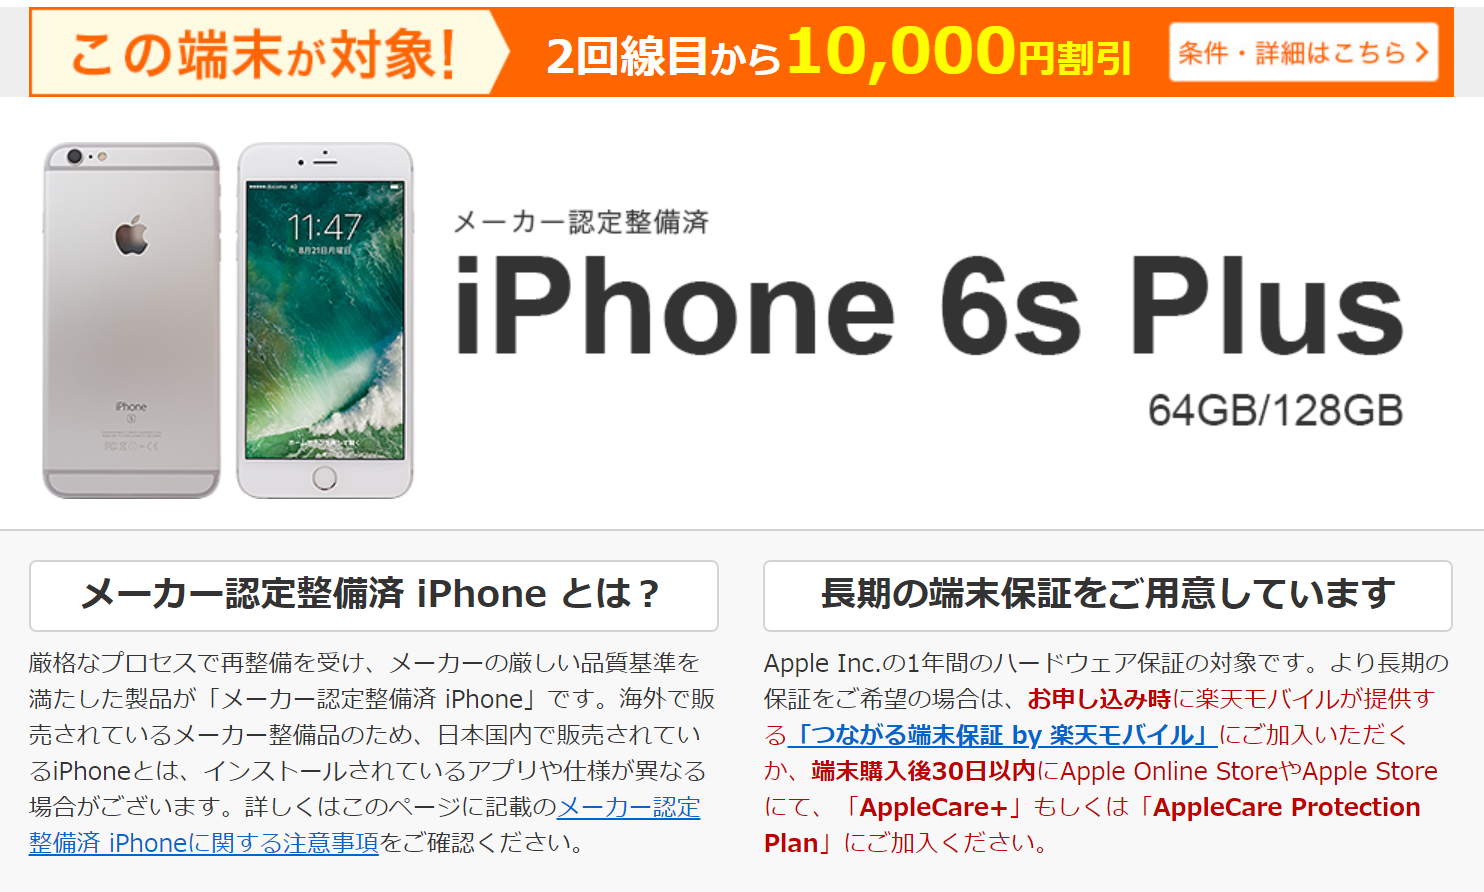 iPhone6sPlus 楽天